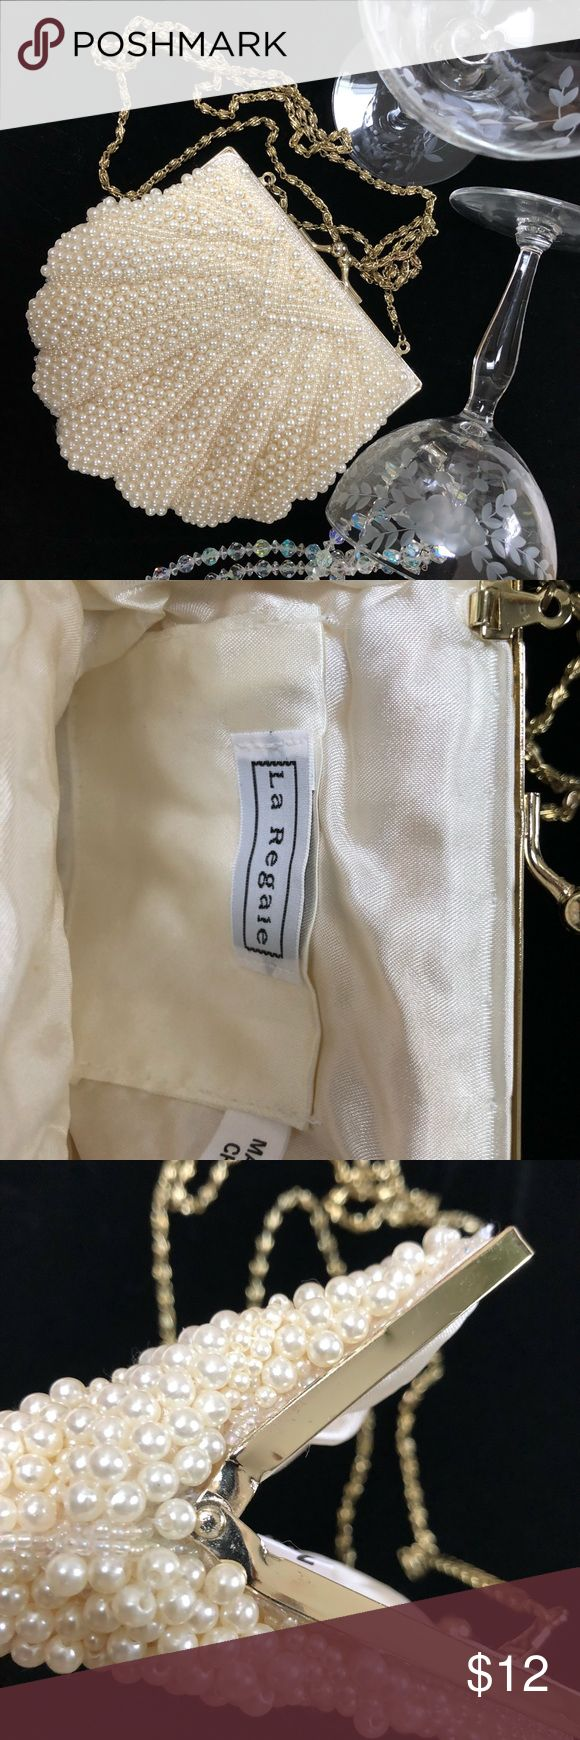 La Regale faux pearl evening bag SALE $17 Classic faux pearl evening bag. Good used condition. Minor blemishes on frame (see photos). Perfect for the holidays or a night out on the town! La Regale Bags Mini Bags